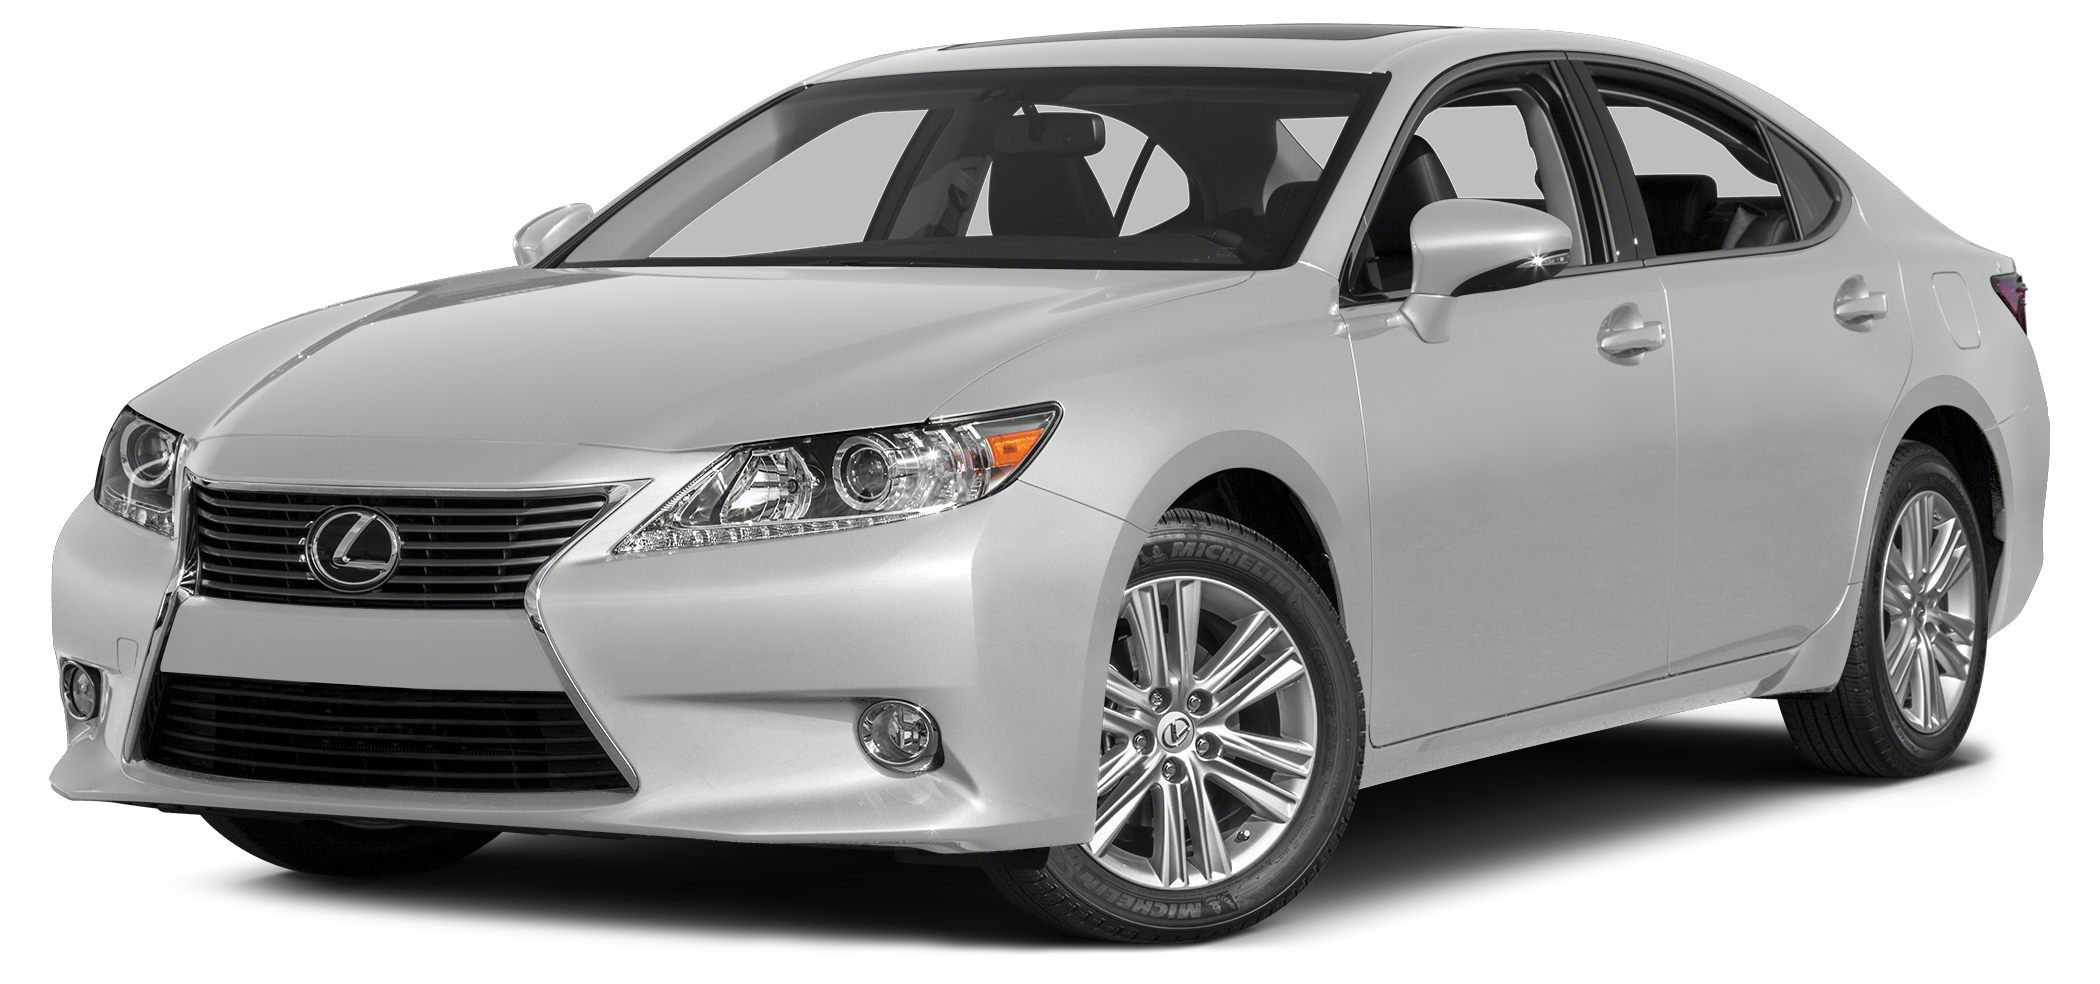 2013 Lexus ES 350 Base PREMIUM PLUS PKGNAVIGATIONLEXUS WARRANTYNEW CAR WARRANTY1 OWNER